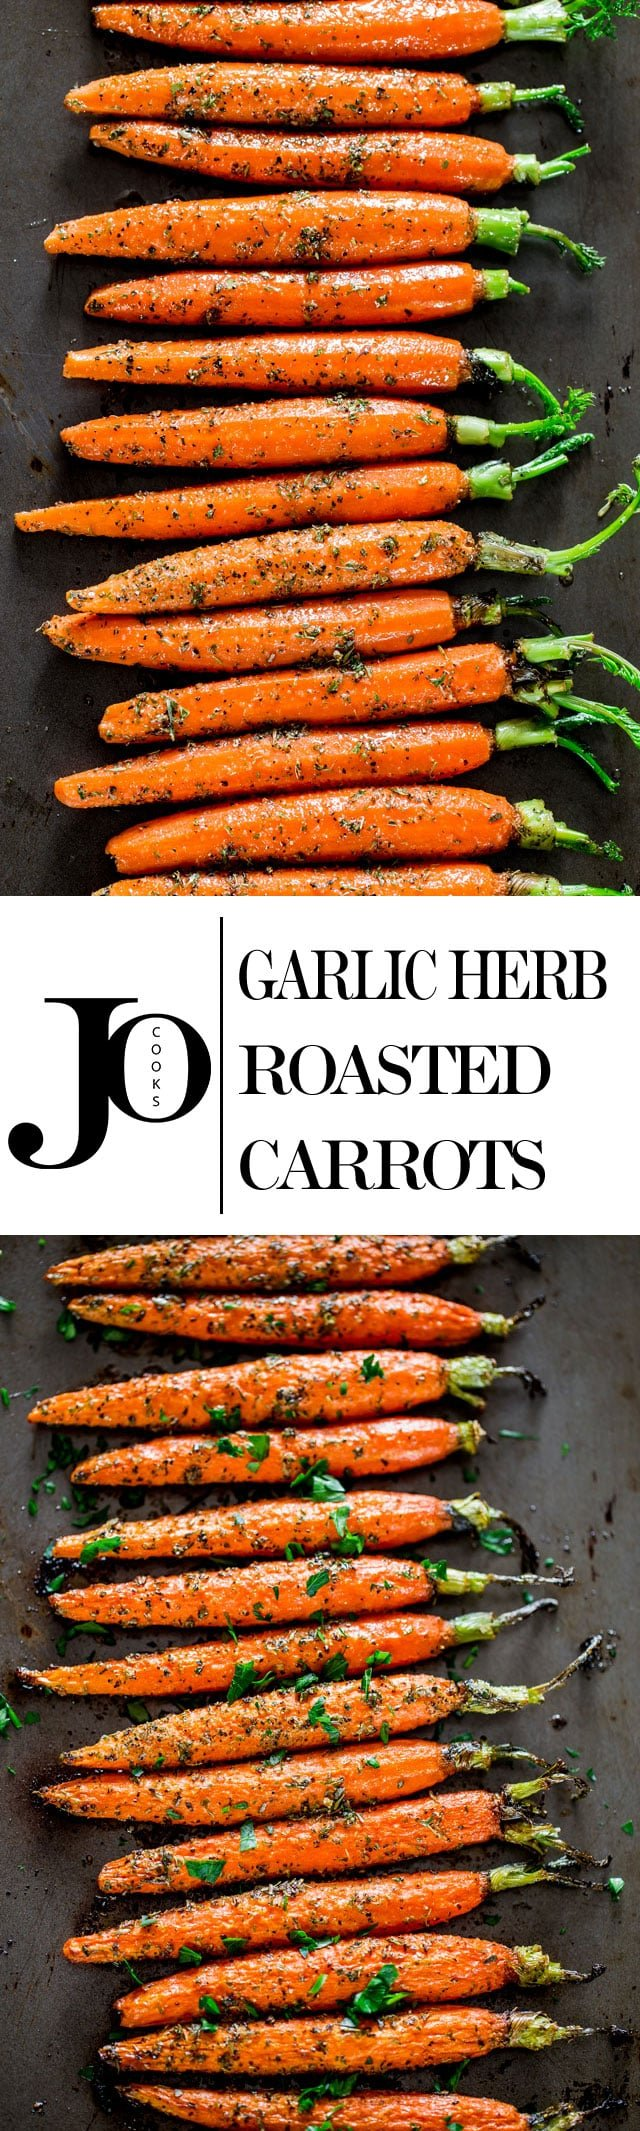 Garlic and Herb Roasted Carrots - these carrots are roasted to perfection with lots of garlic and herbs such as thyme, basil and oregano, creating the perfect side dish. www.jocooks.com #roastedcarrots